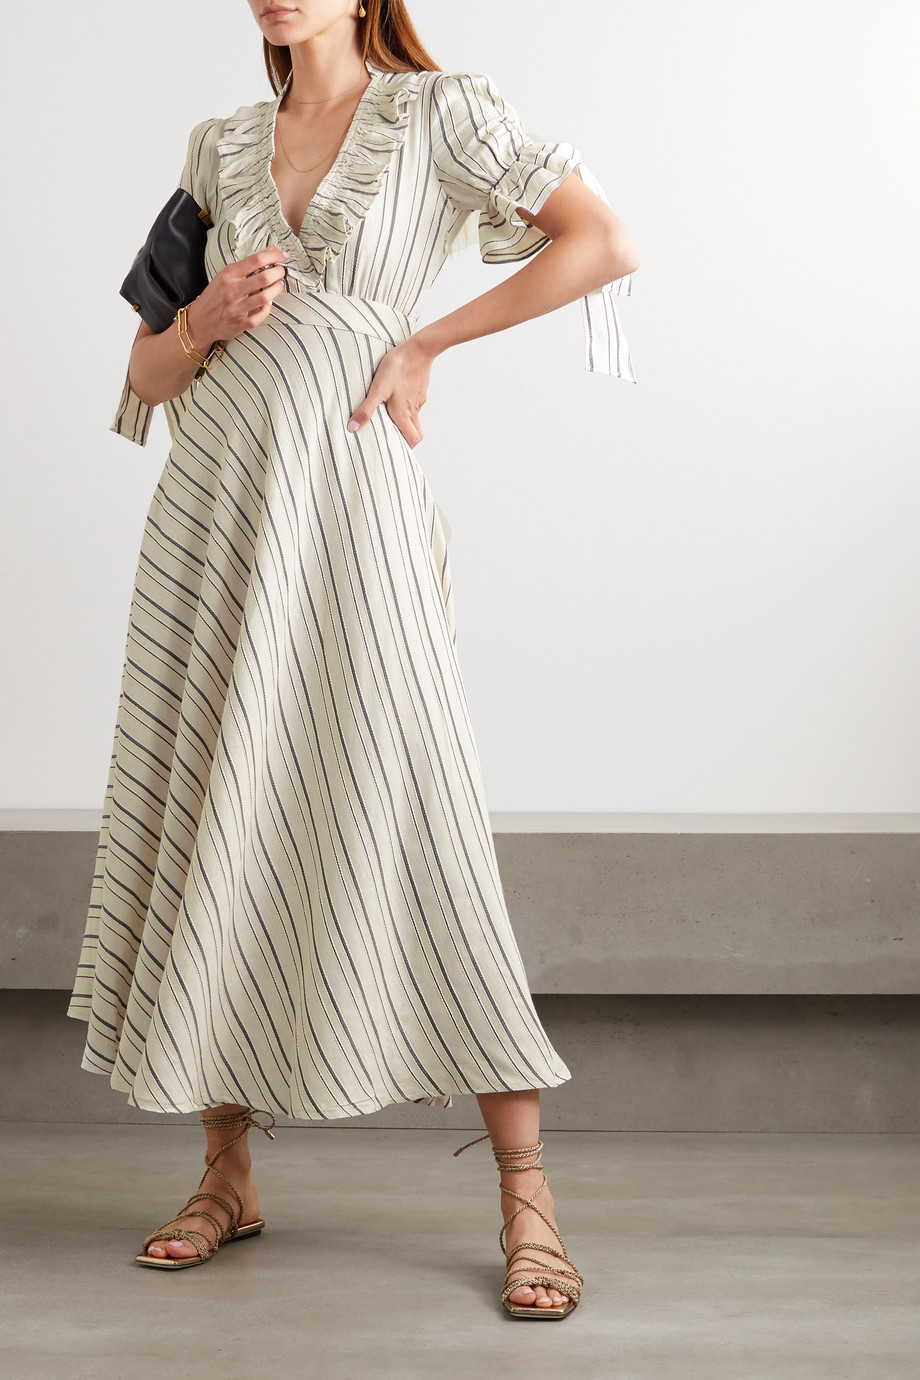 Lug Von Siga Dora ruffled striped gauze midi dress